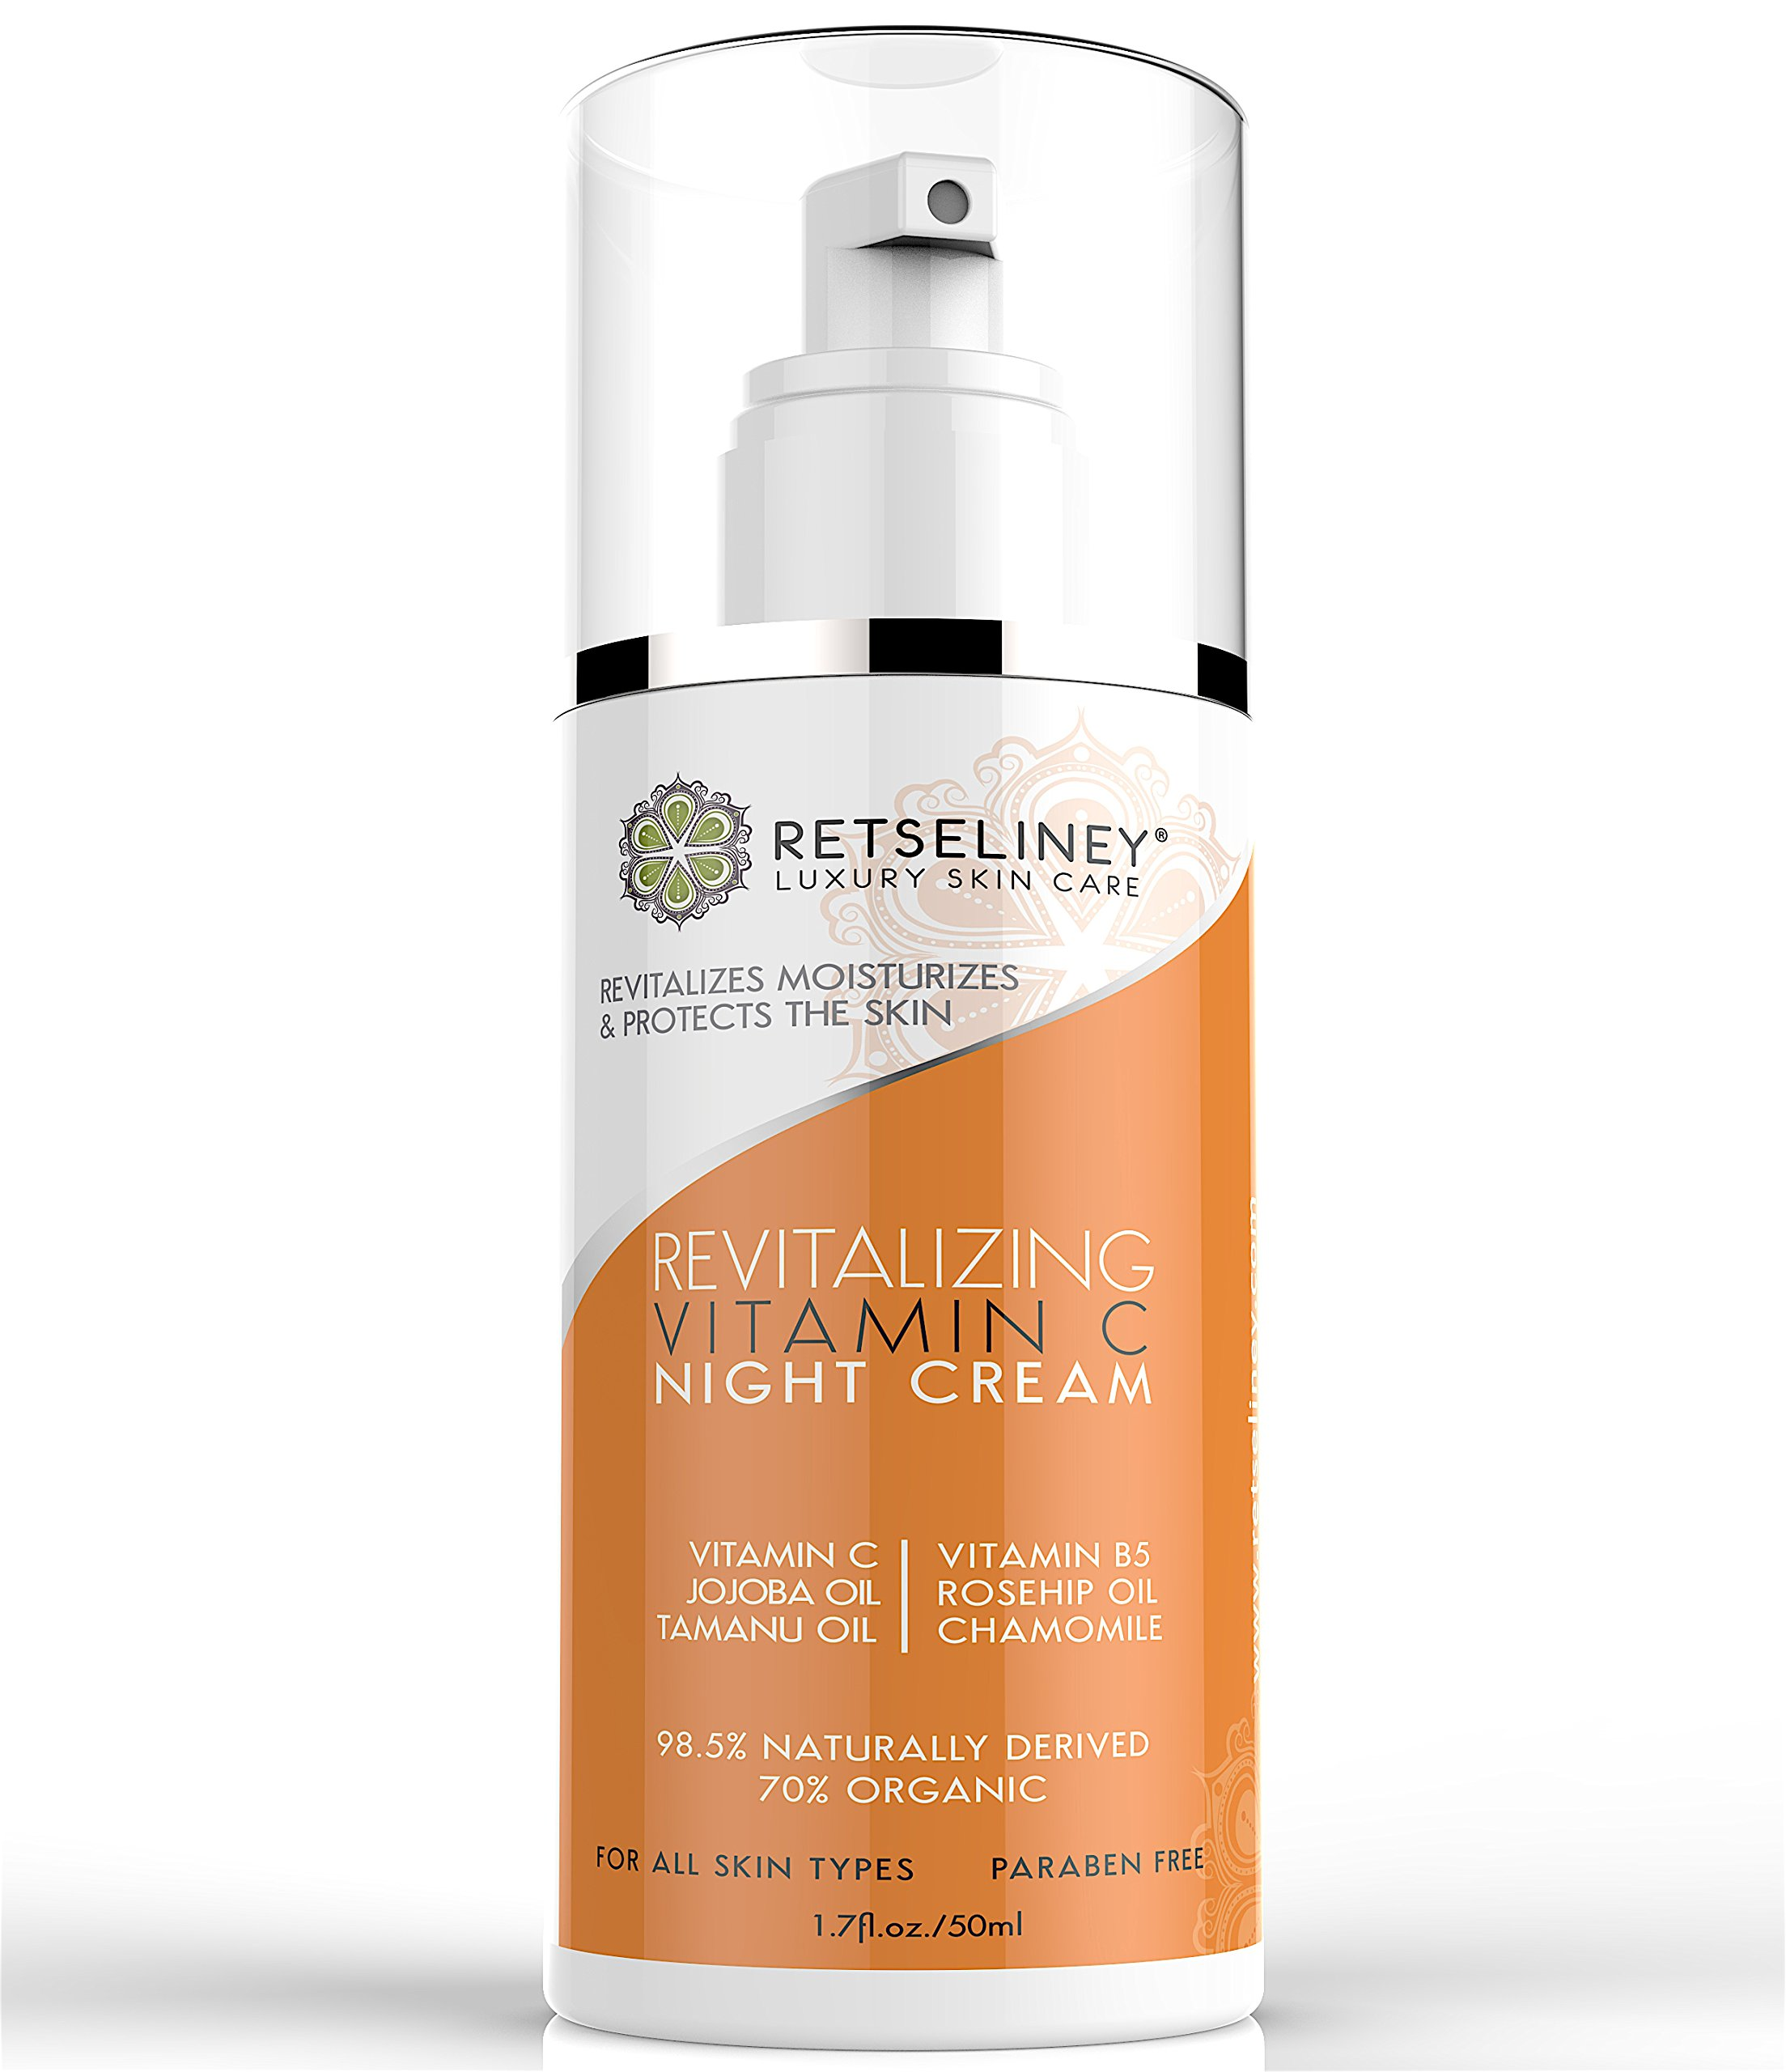 Retseliney Revitalizing Vitamin C Night Cream for Face, Organic & Natural Anti Aging Moisturizer with Rosehip Oil, Jojoba Oil, Reduces Wrinkles, Sun Spots & Fine Lines, Vegan Skin Lotion